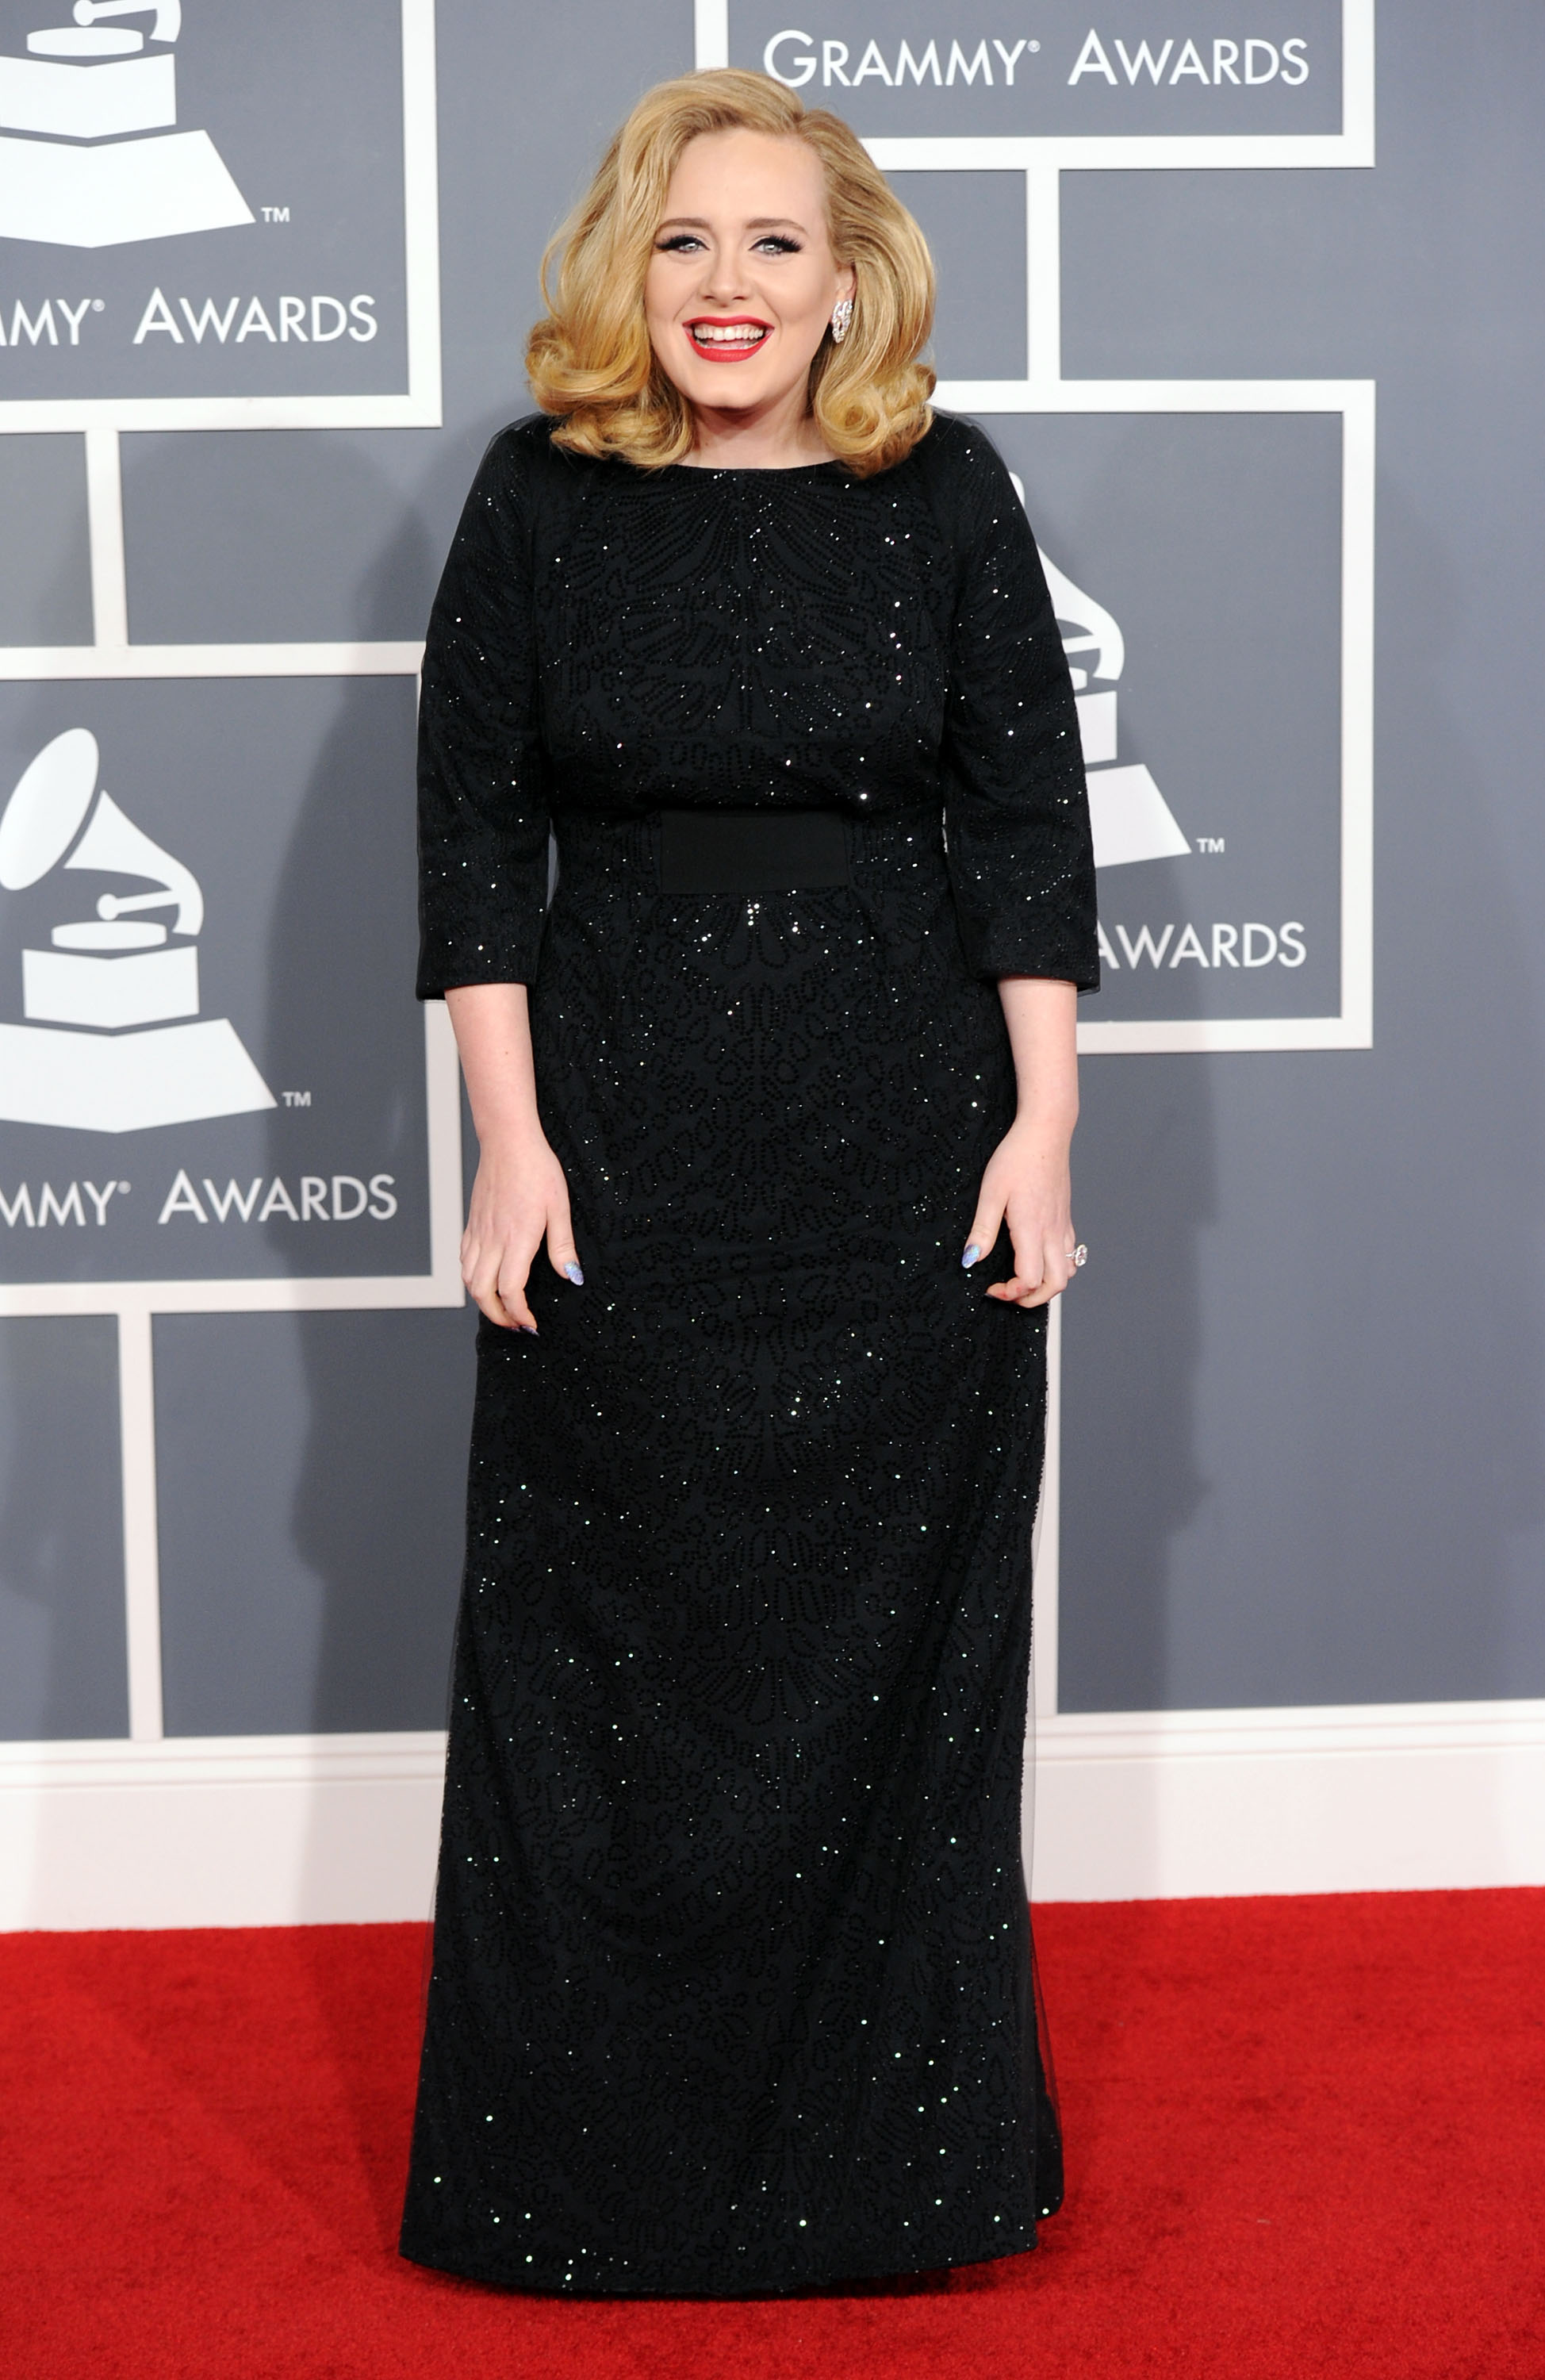 red carpet dress pictures at grammy awards 2012 popsugar